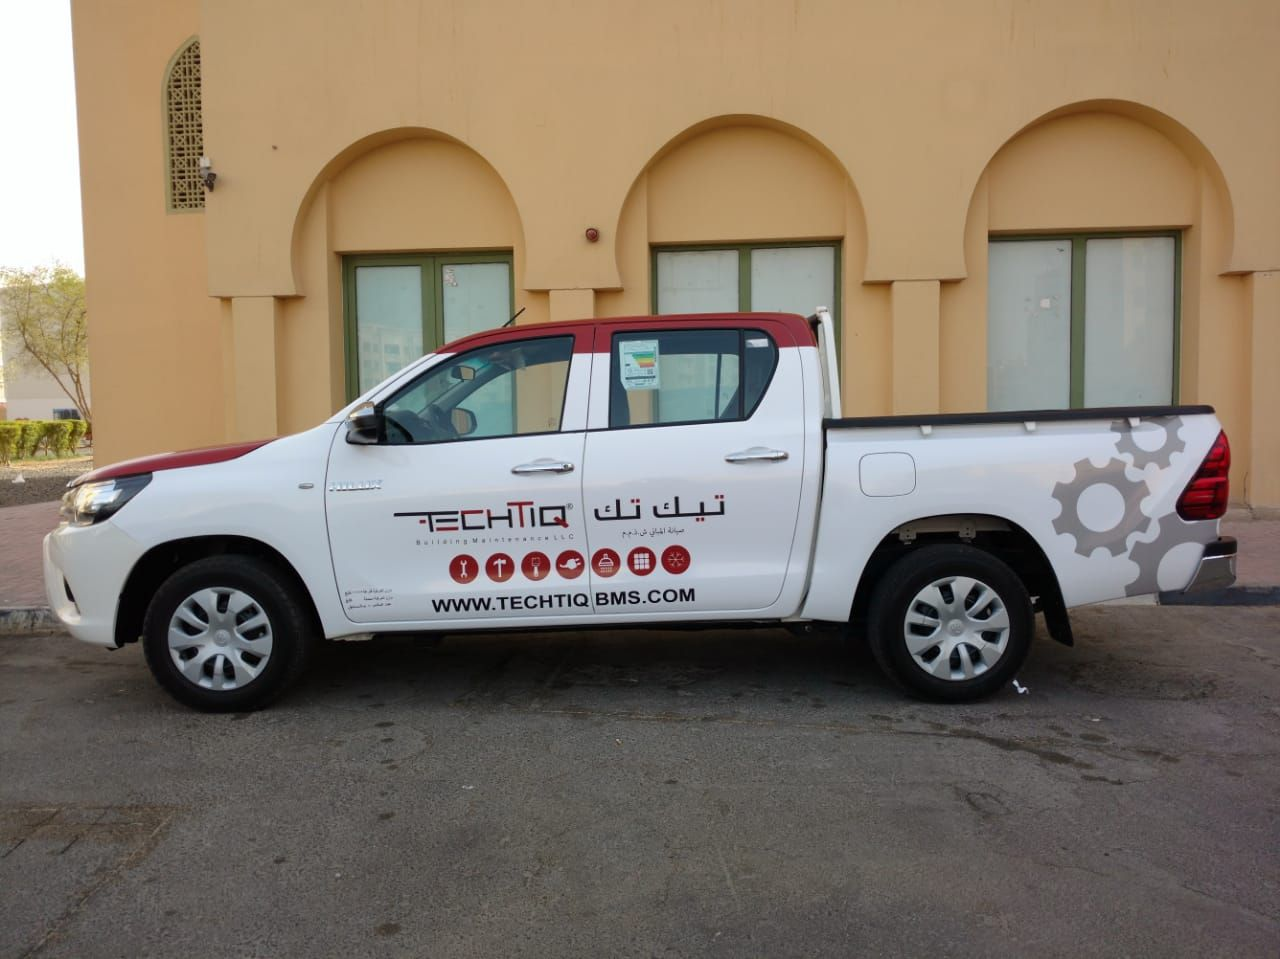 Vehicle Branding Car Stickers Bus Wrapping Vehicle Advertisement In Dubai Car Graphics Car Brands Car Signs [ 959 x 1280 Pixel ]